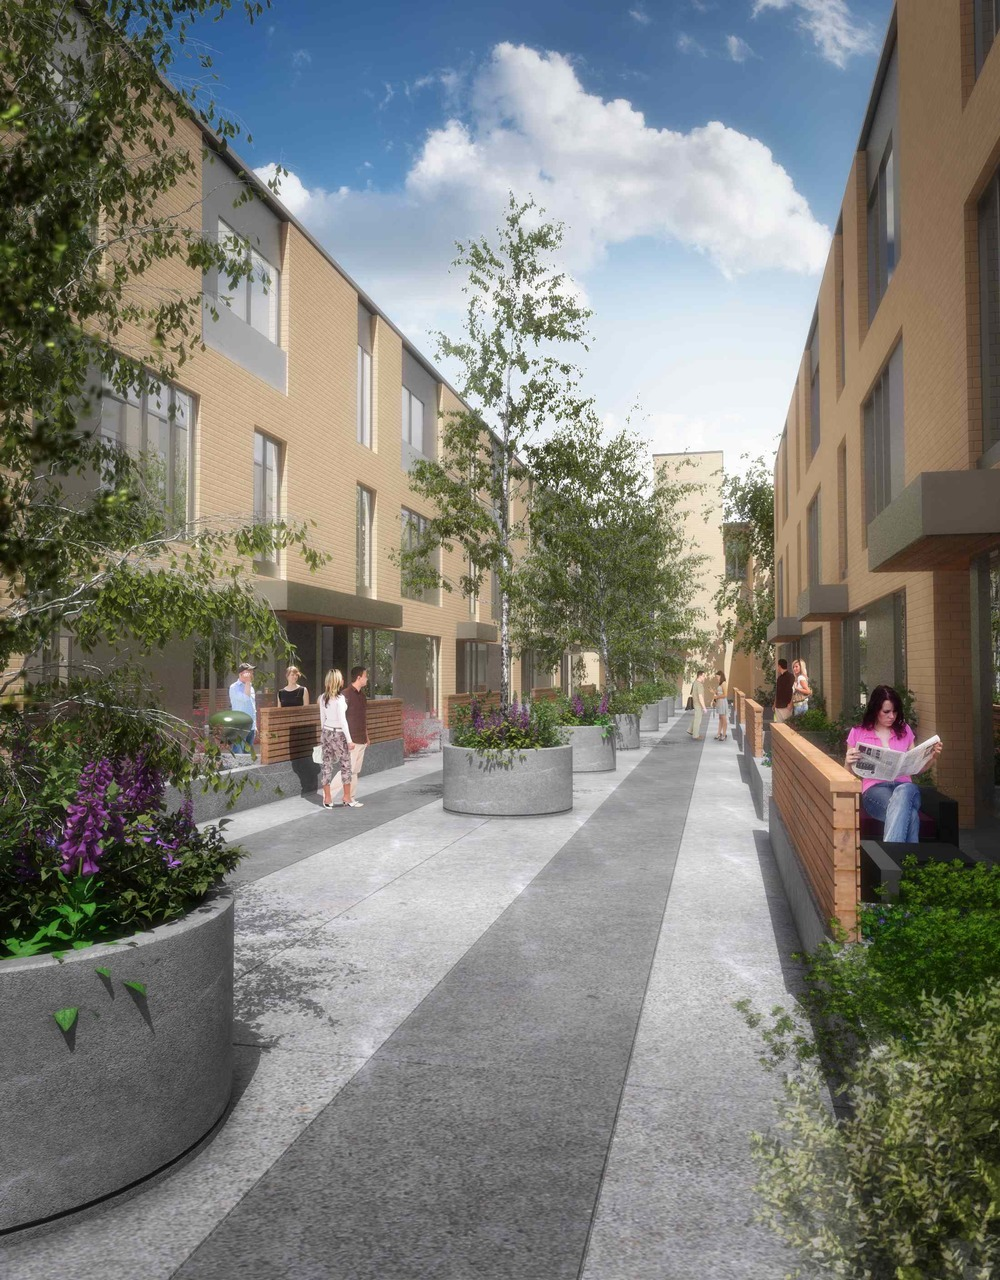 Rendering of the interior courtyard with its urban mews sense of place. (photo credit: Brookfield Residential)